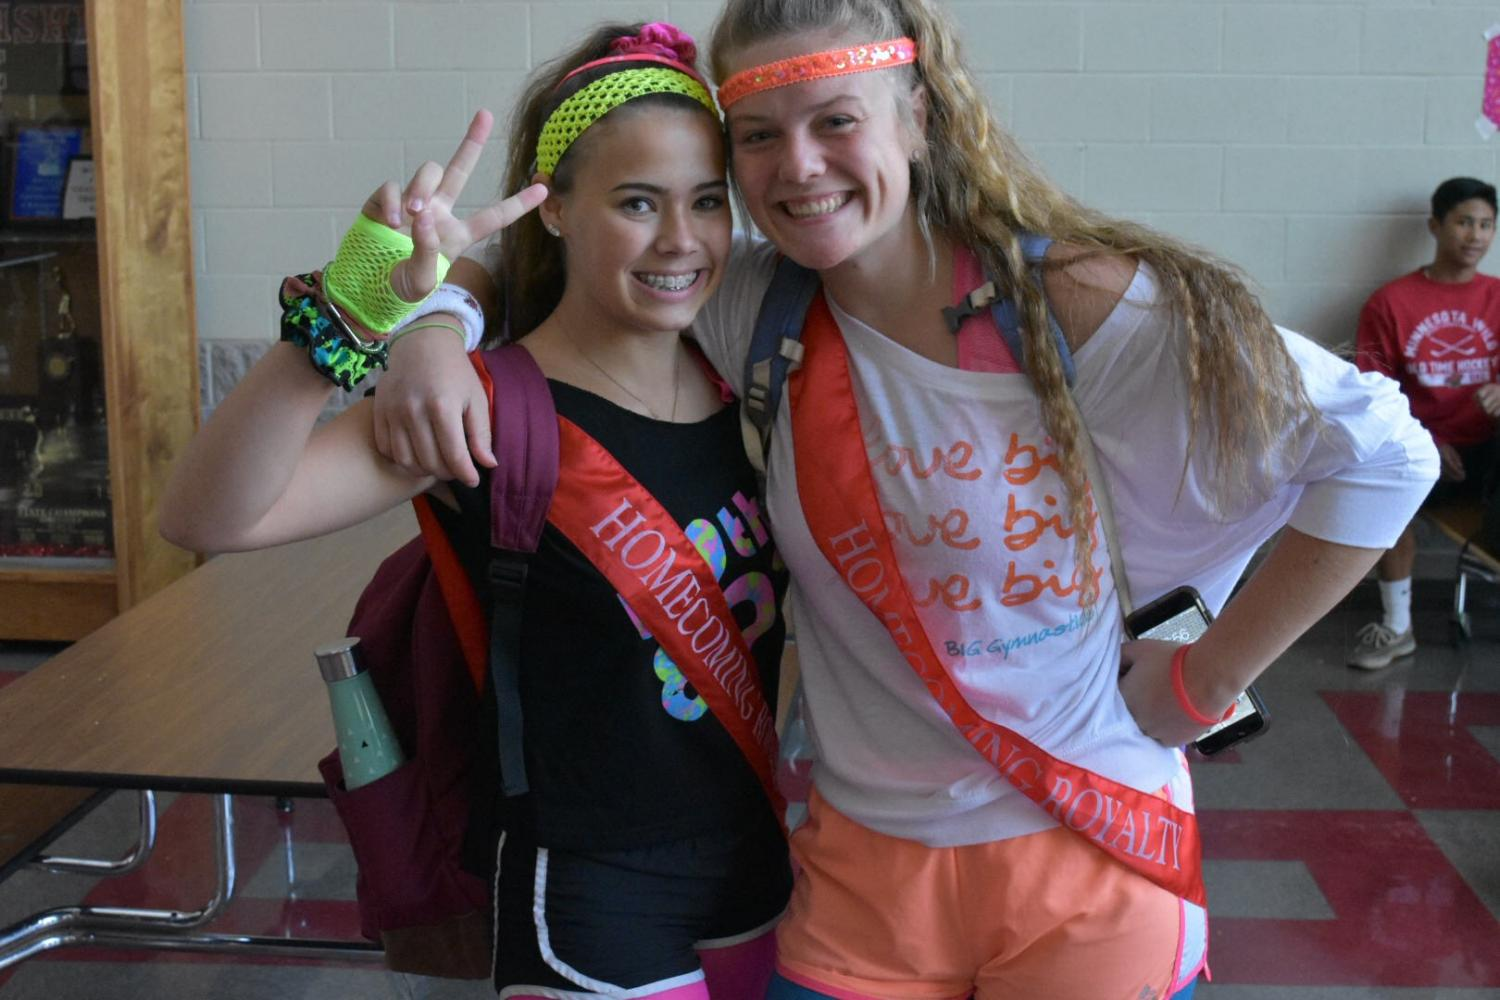 Gallery: Homecoming dress days